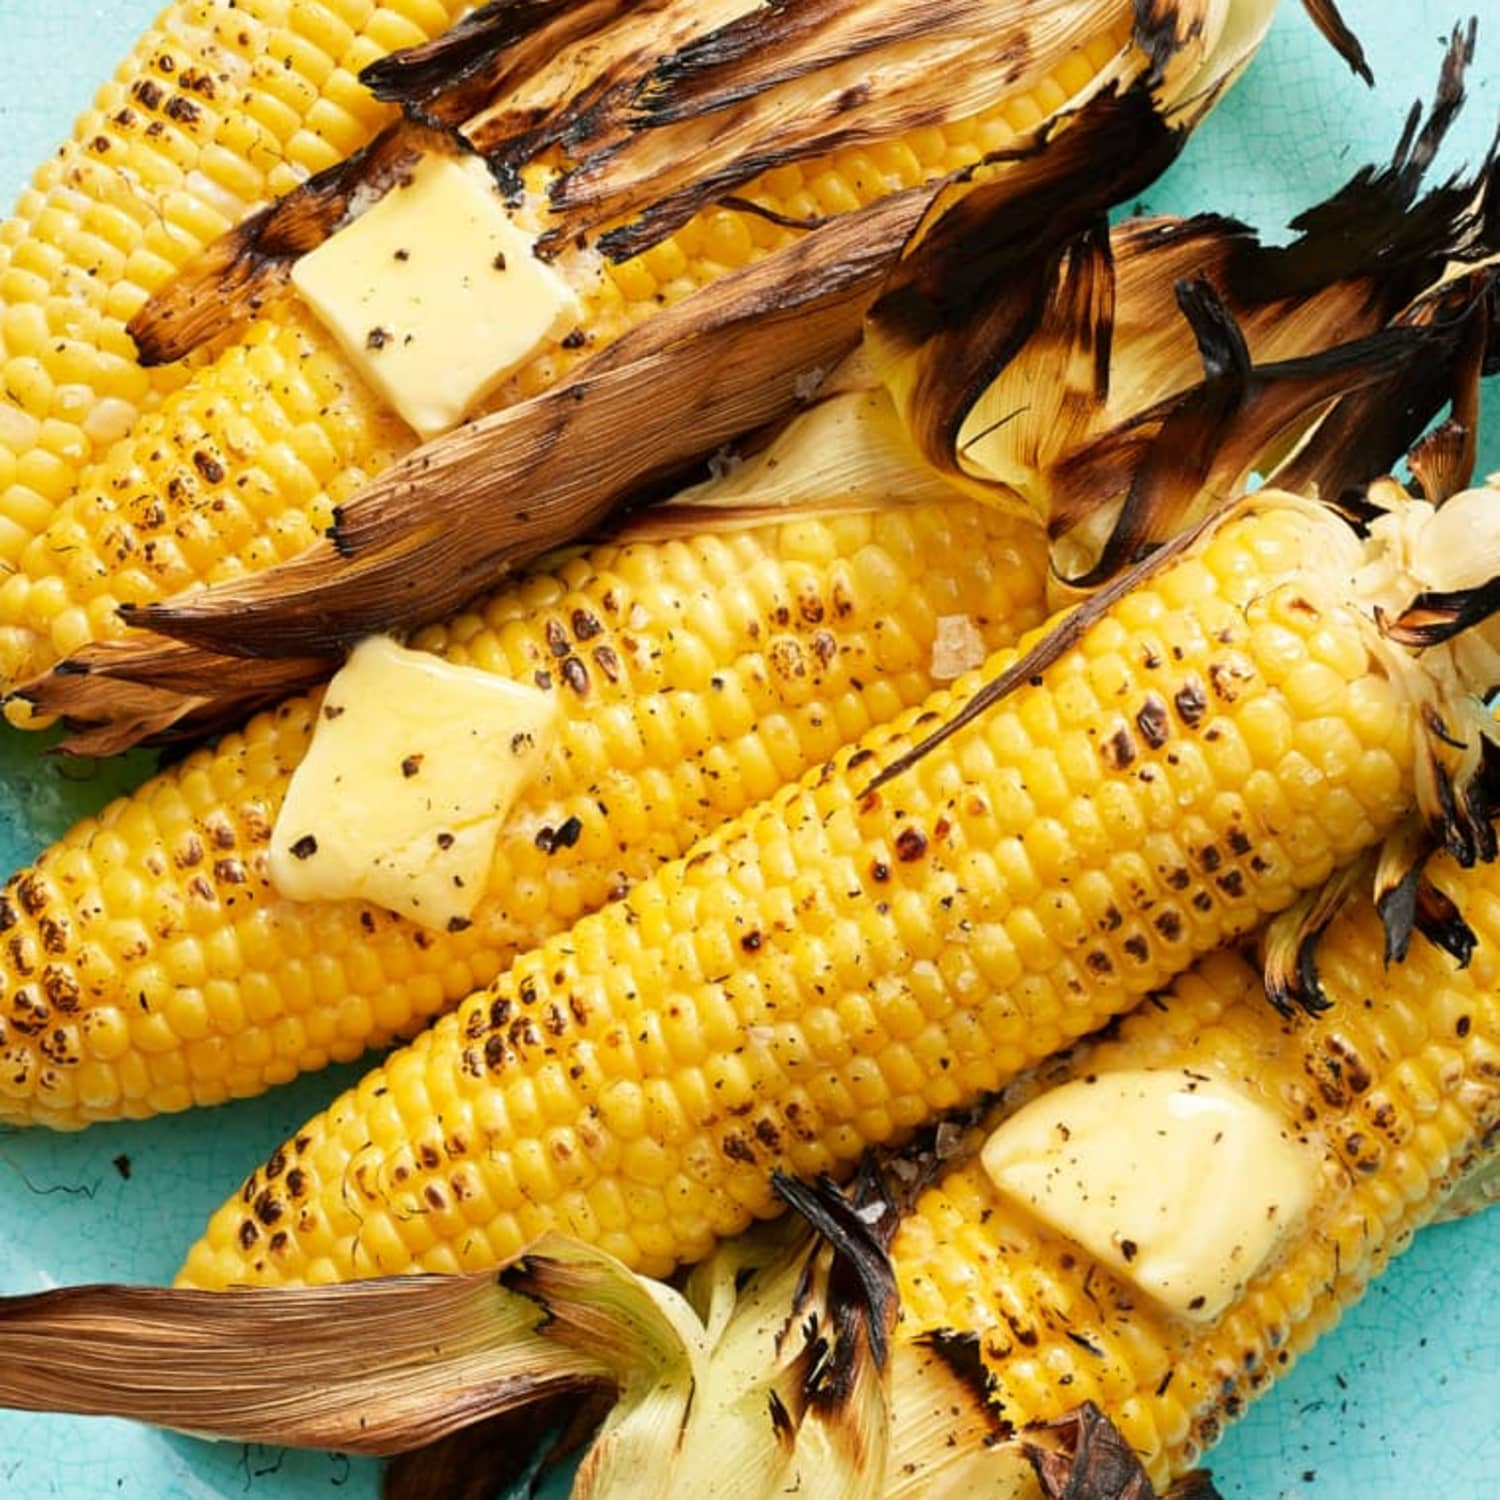 How To Grill The Best Corn On The Cob Kitchn,Veiled Chameleon Care